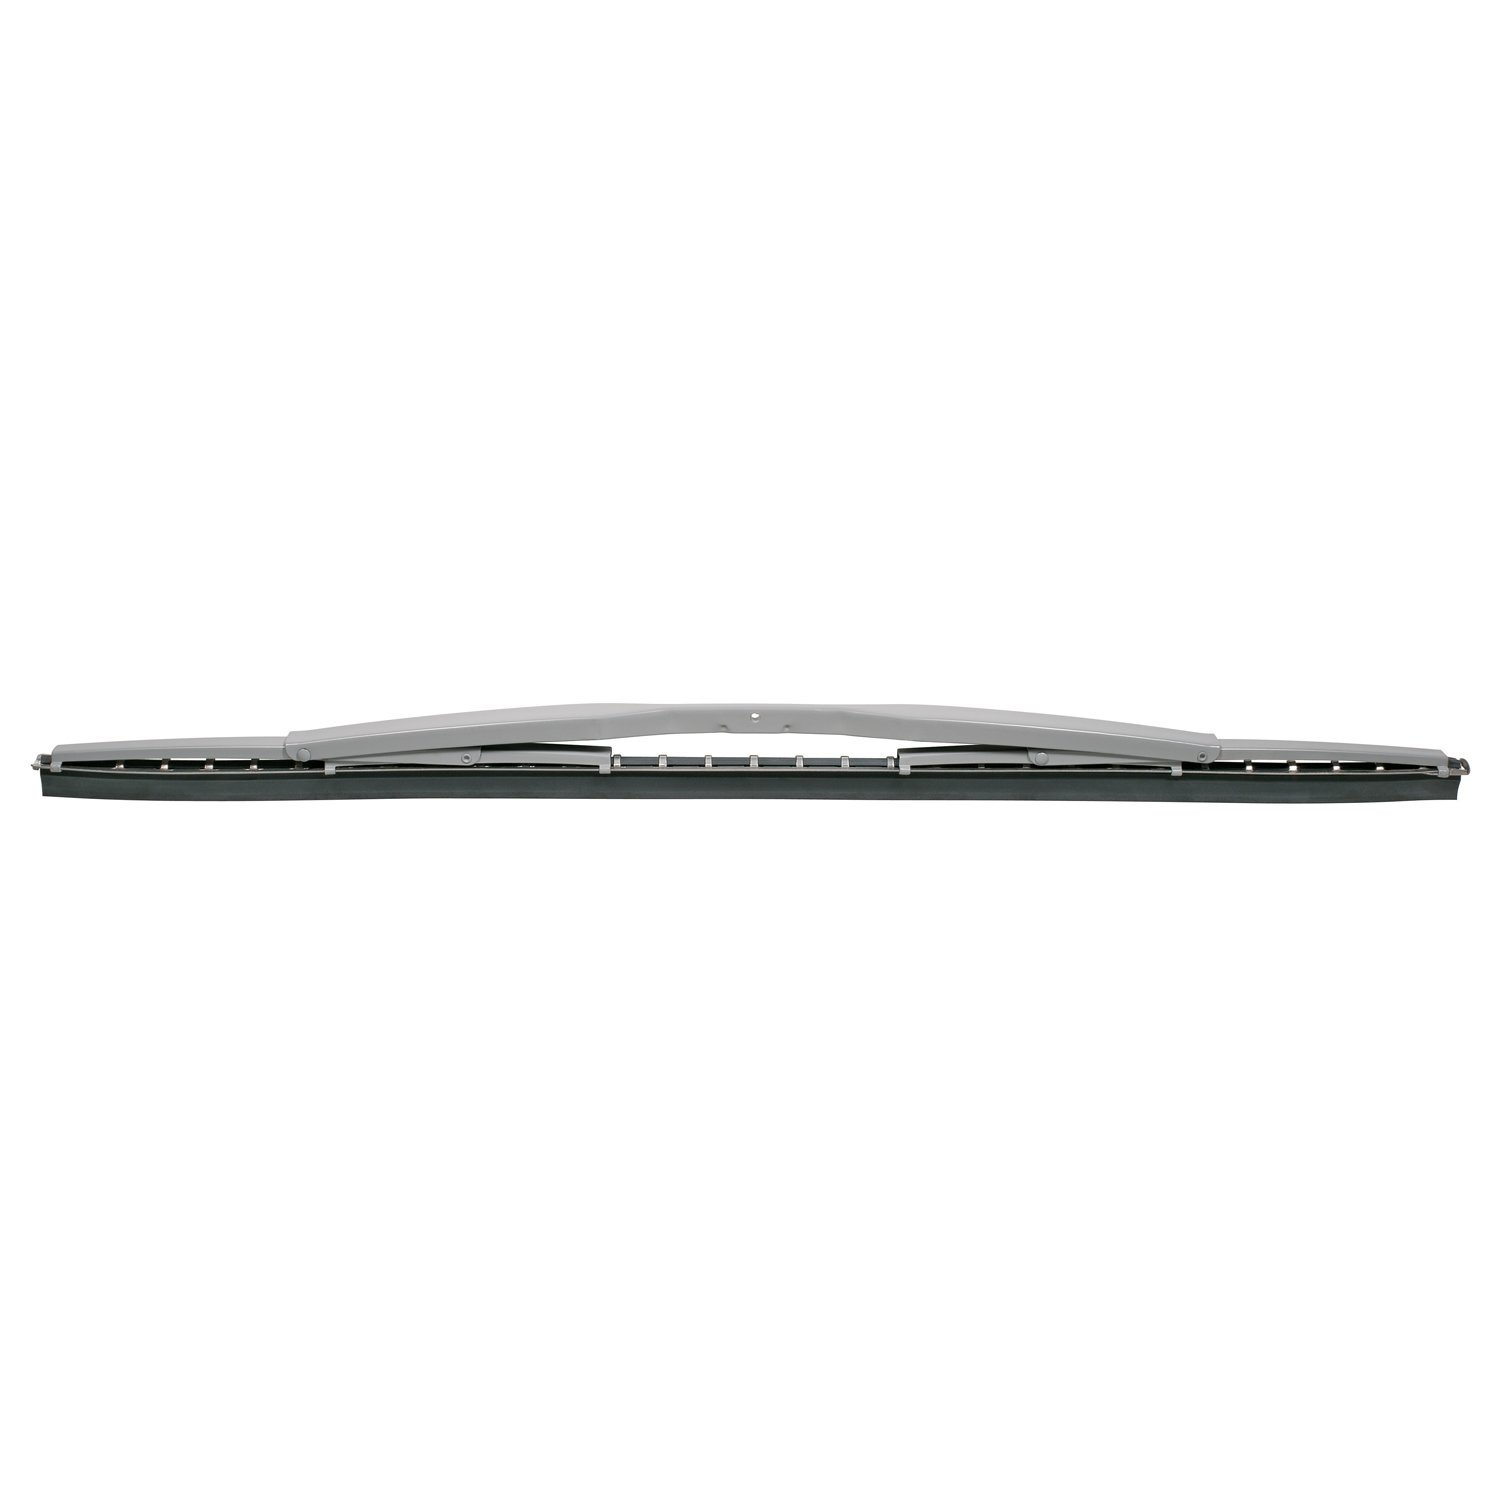 ACDelco 8-7122 Professional Heavy Duty Silver Five Bar Wiper Blade for Curved Windshields, 12 in (Pack of 1)